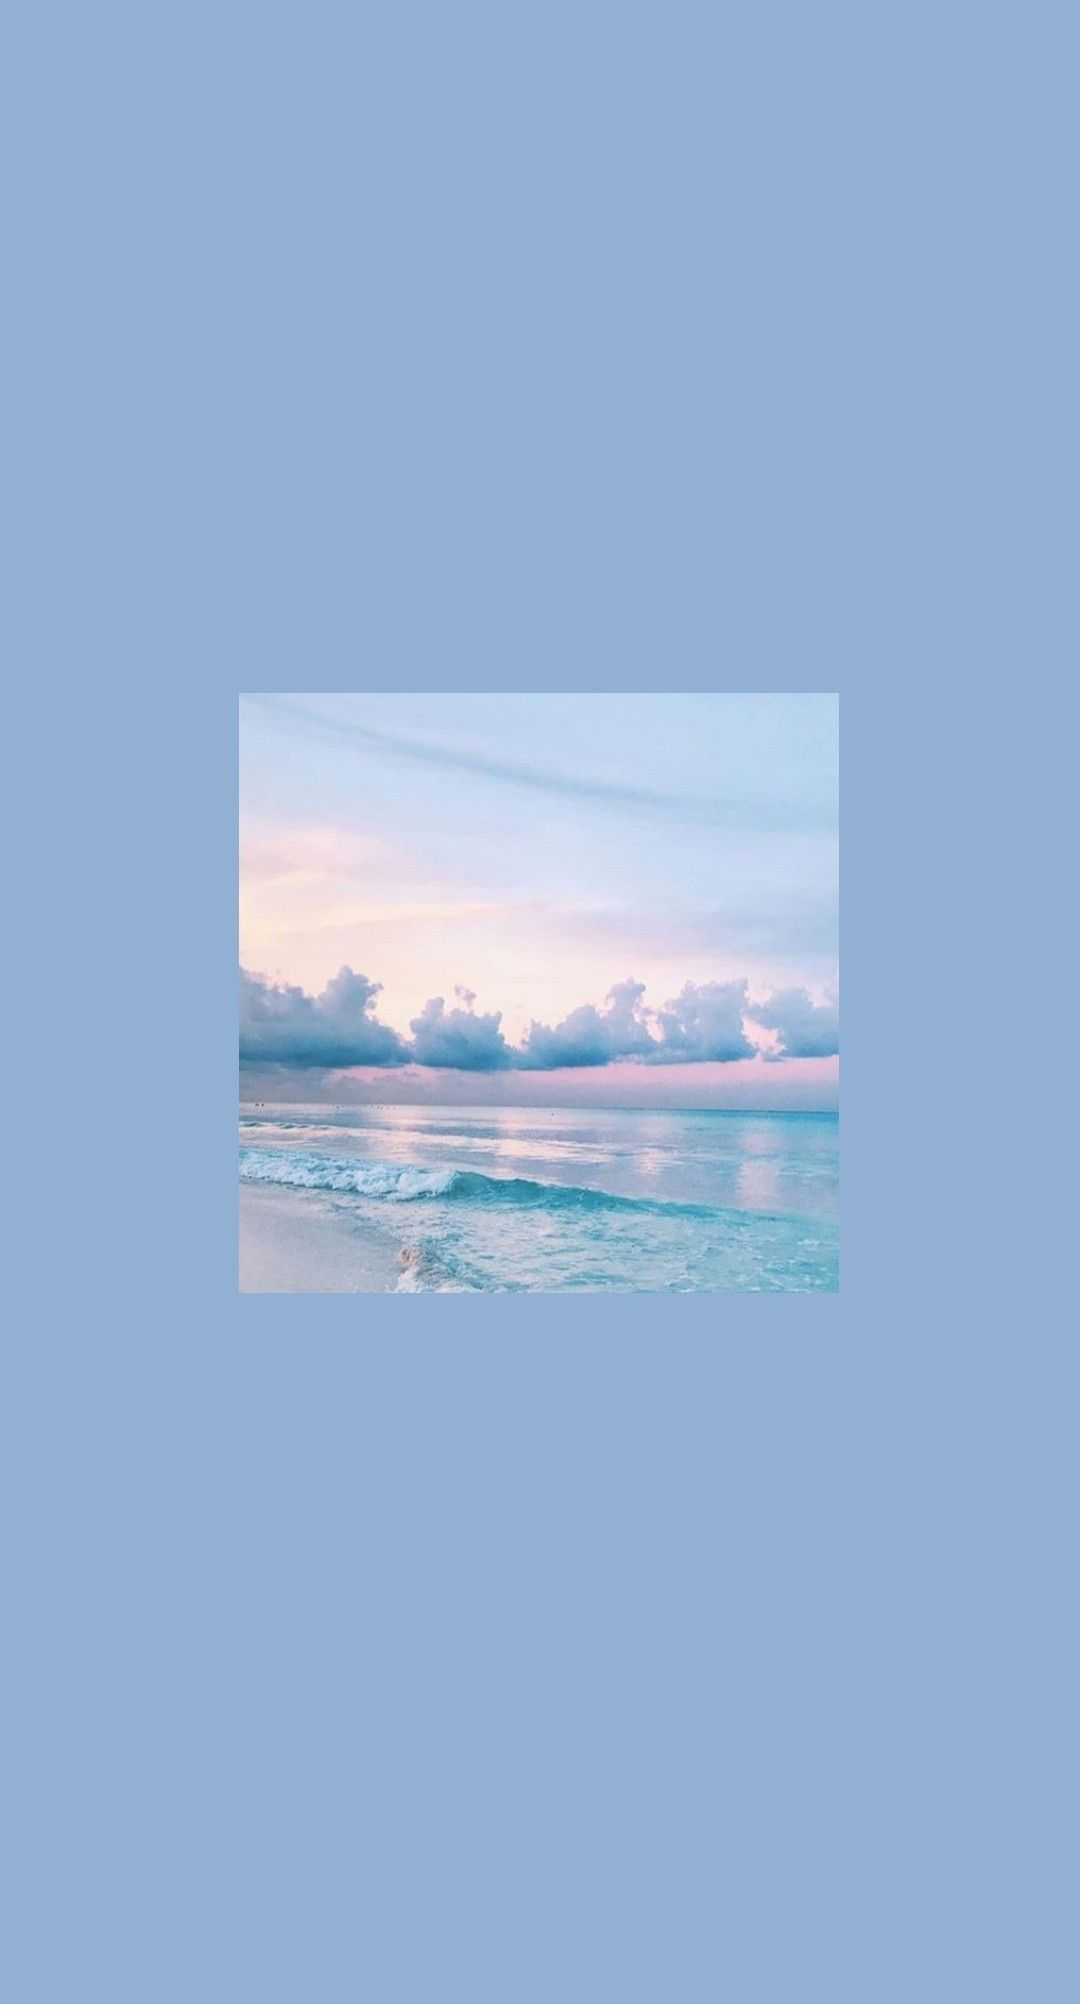 My Favorite Color Os Blue And This Is Very Pretty How All The Light Colors Come Together Very A Sky Aesthetic Blue Wallpaper Iphone Aesthetic Pastel Wallpaper